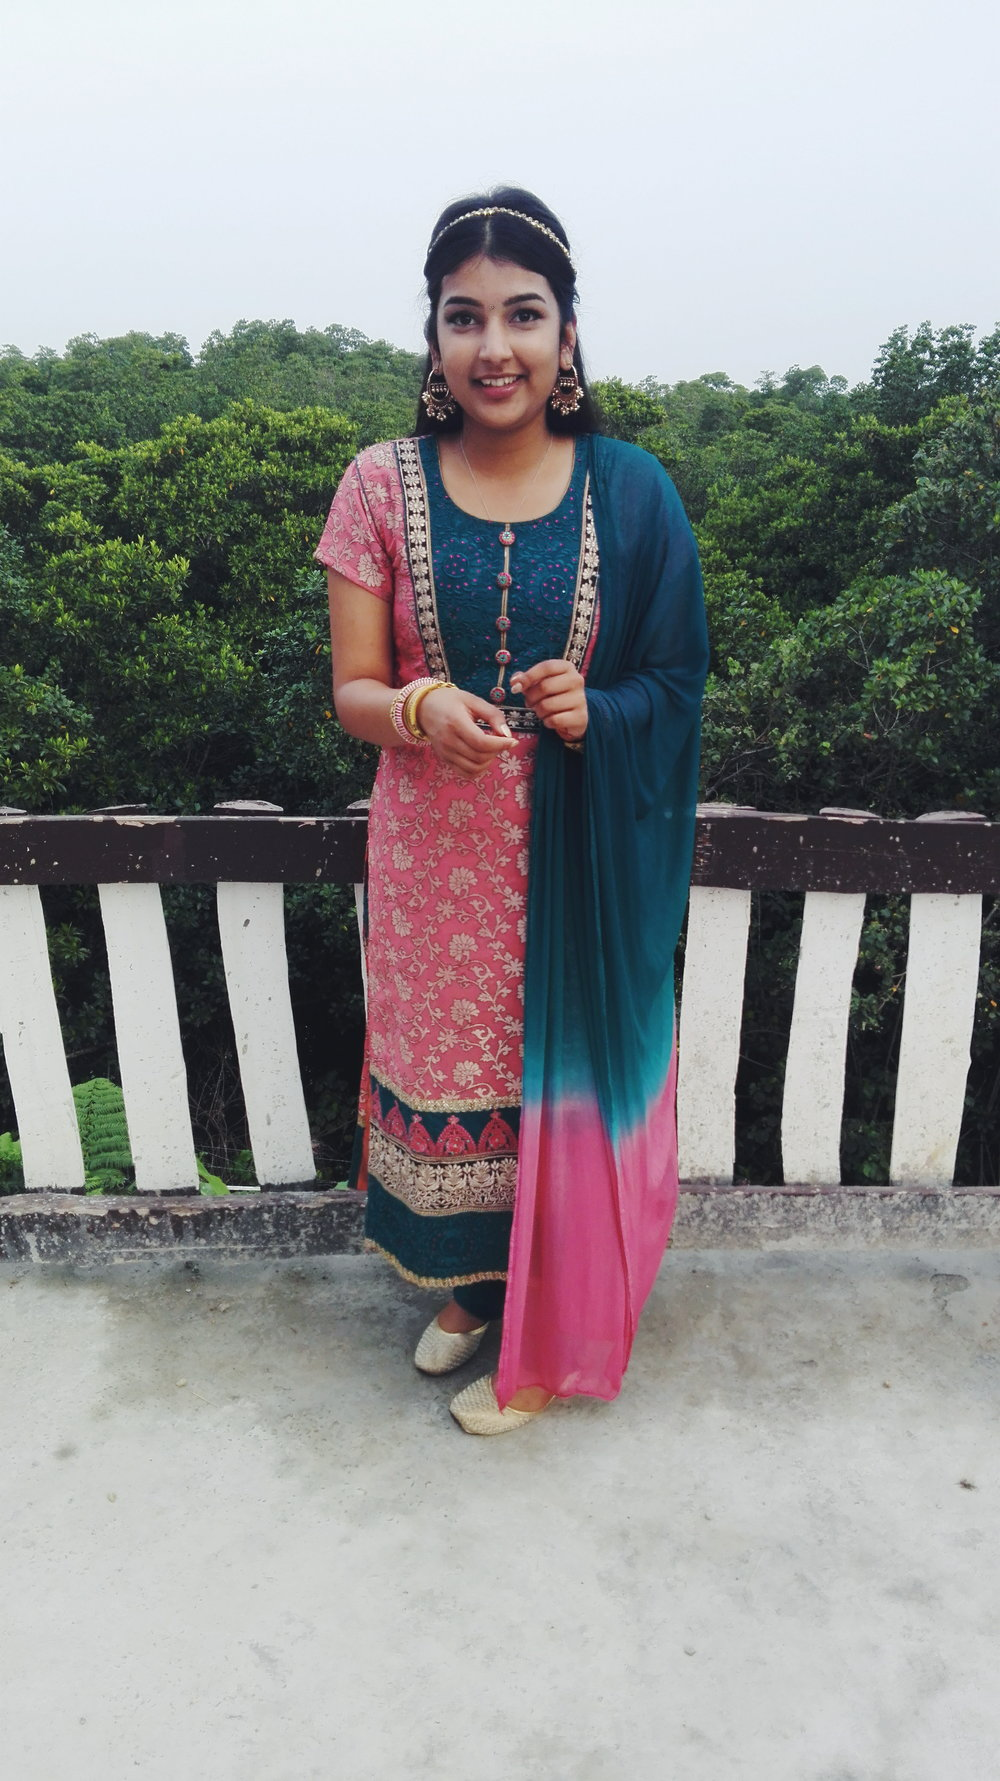 Tilak   A more simpler occasion and a raise from the dead of the straight kameez. Headpiece is actually an anklet and earrings are from Colette (really into mixing indian and western things).